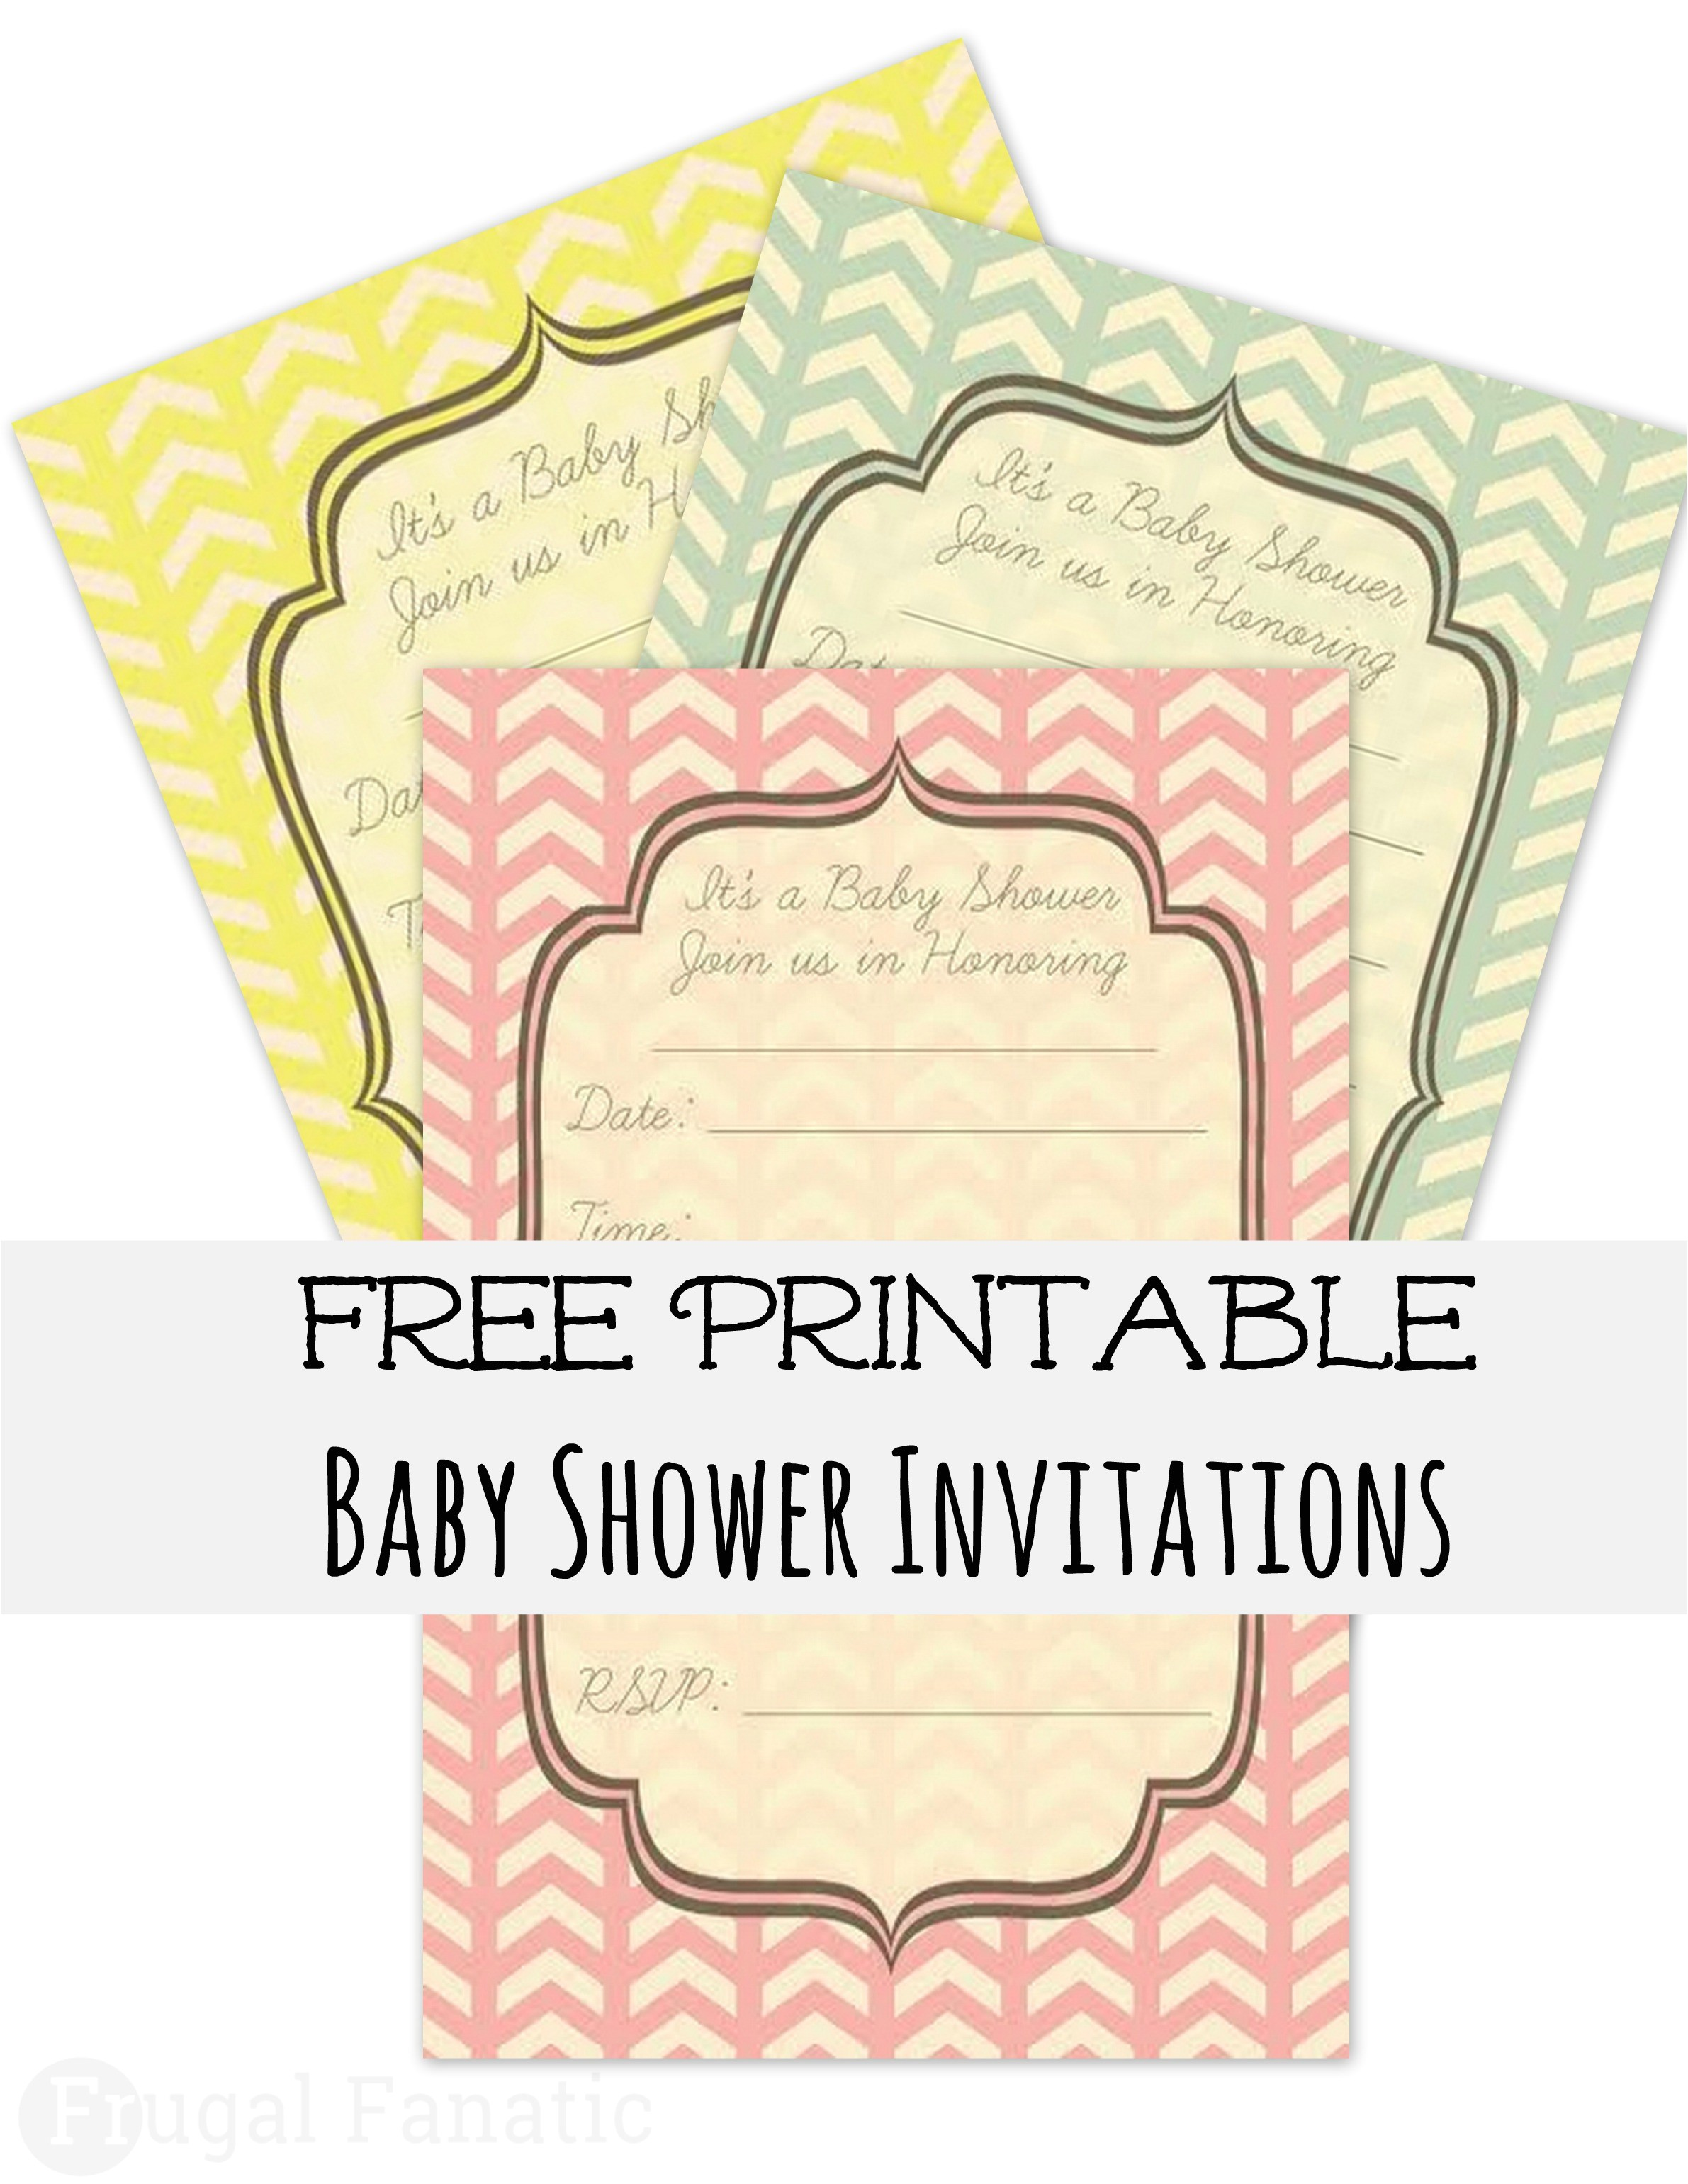 Design My Own Baby Shower Invitations Baby Shower Invitations Create Your Own Free